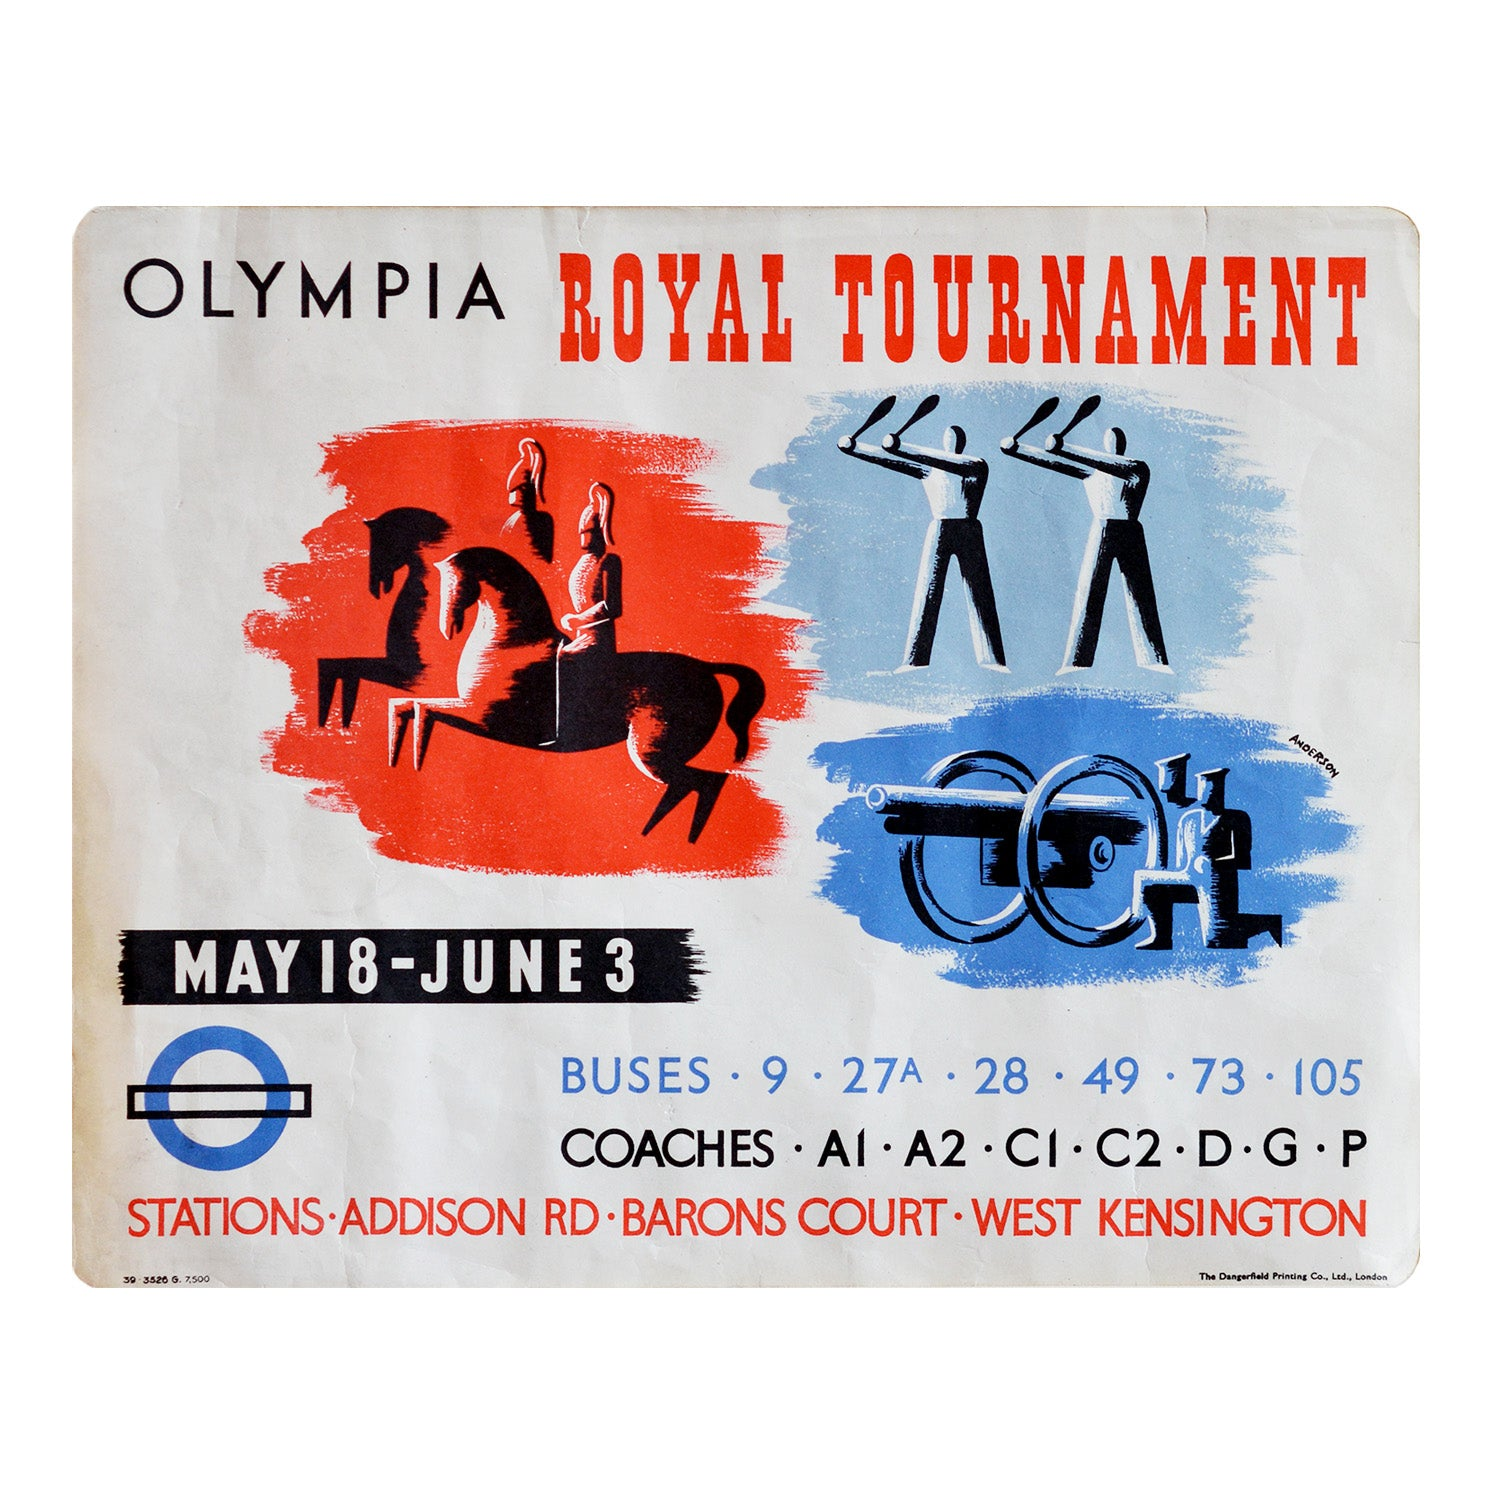 Olympia Royal Tournament